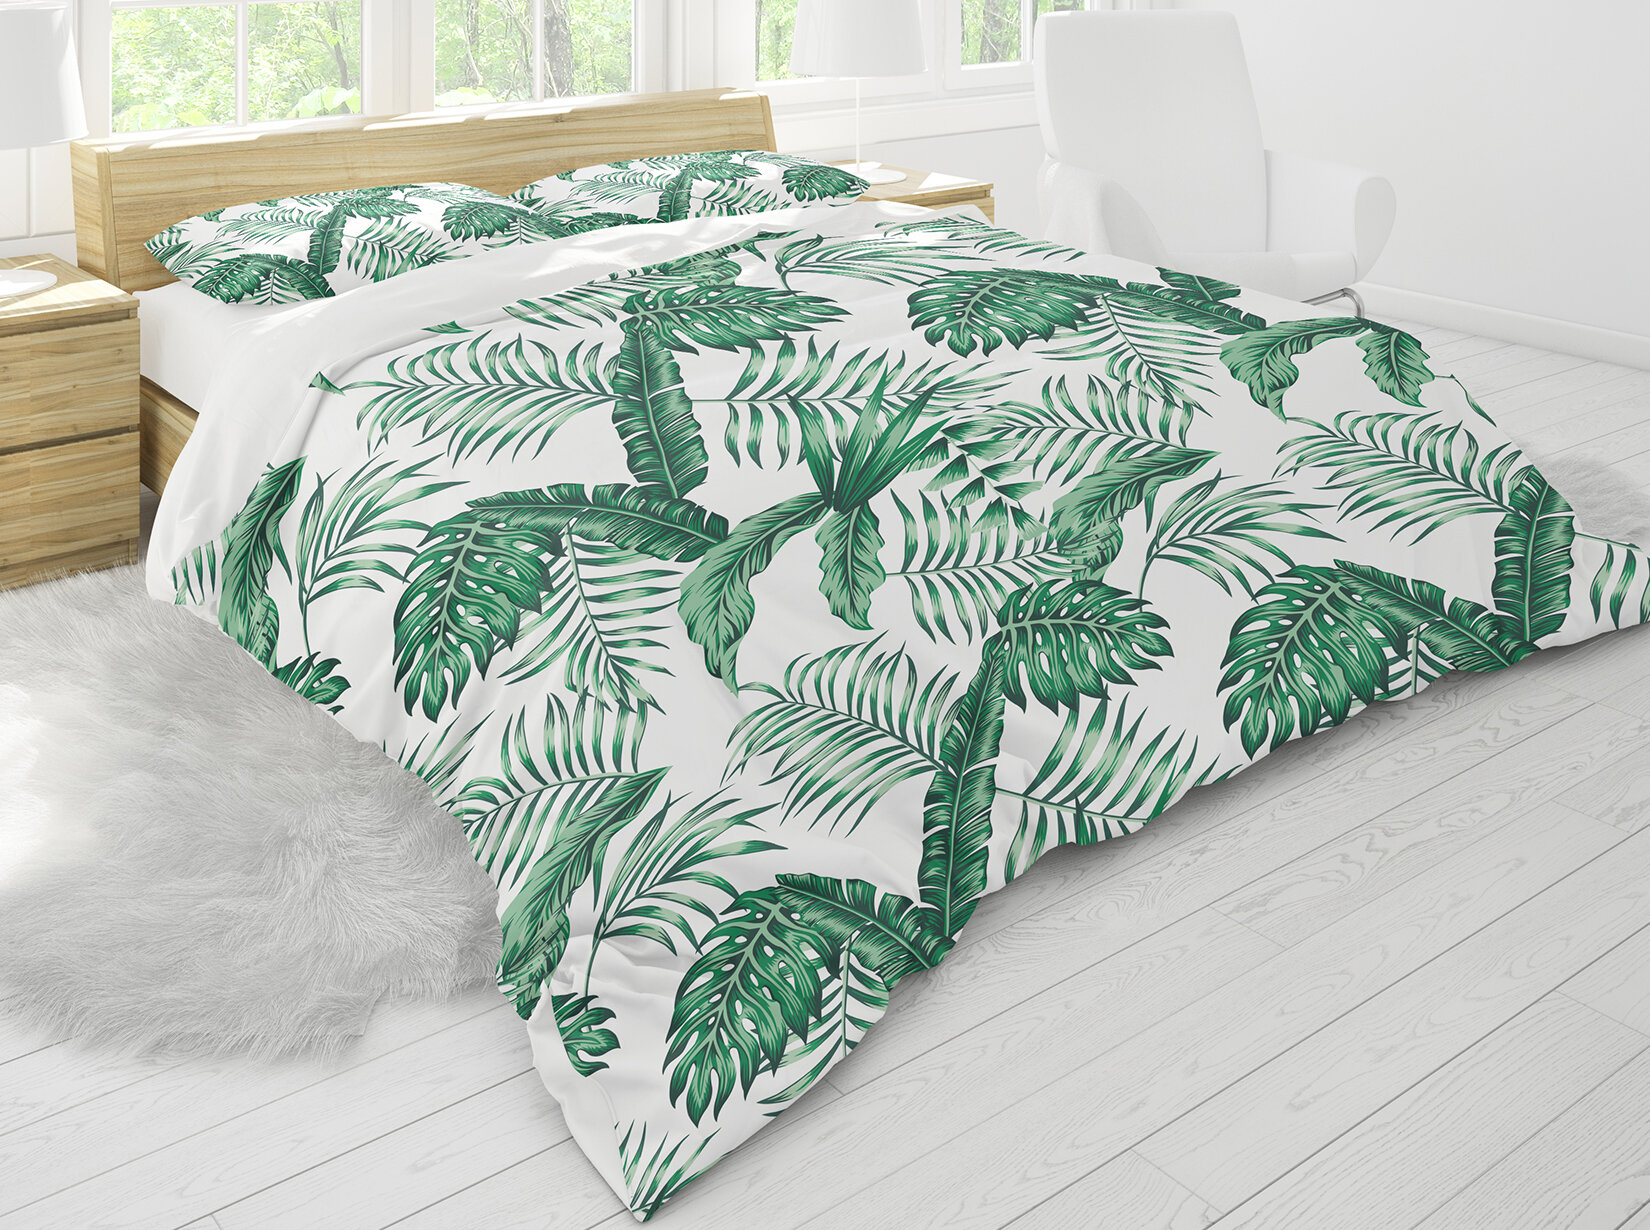 Bayou Breeze Micaela Tropical Leaves Comforter Set Wayfair Find over 100+ of the best free tropical leaves images. micaela tropical leaves comforter set